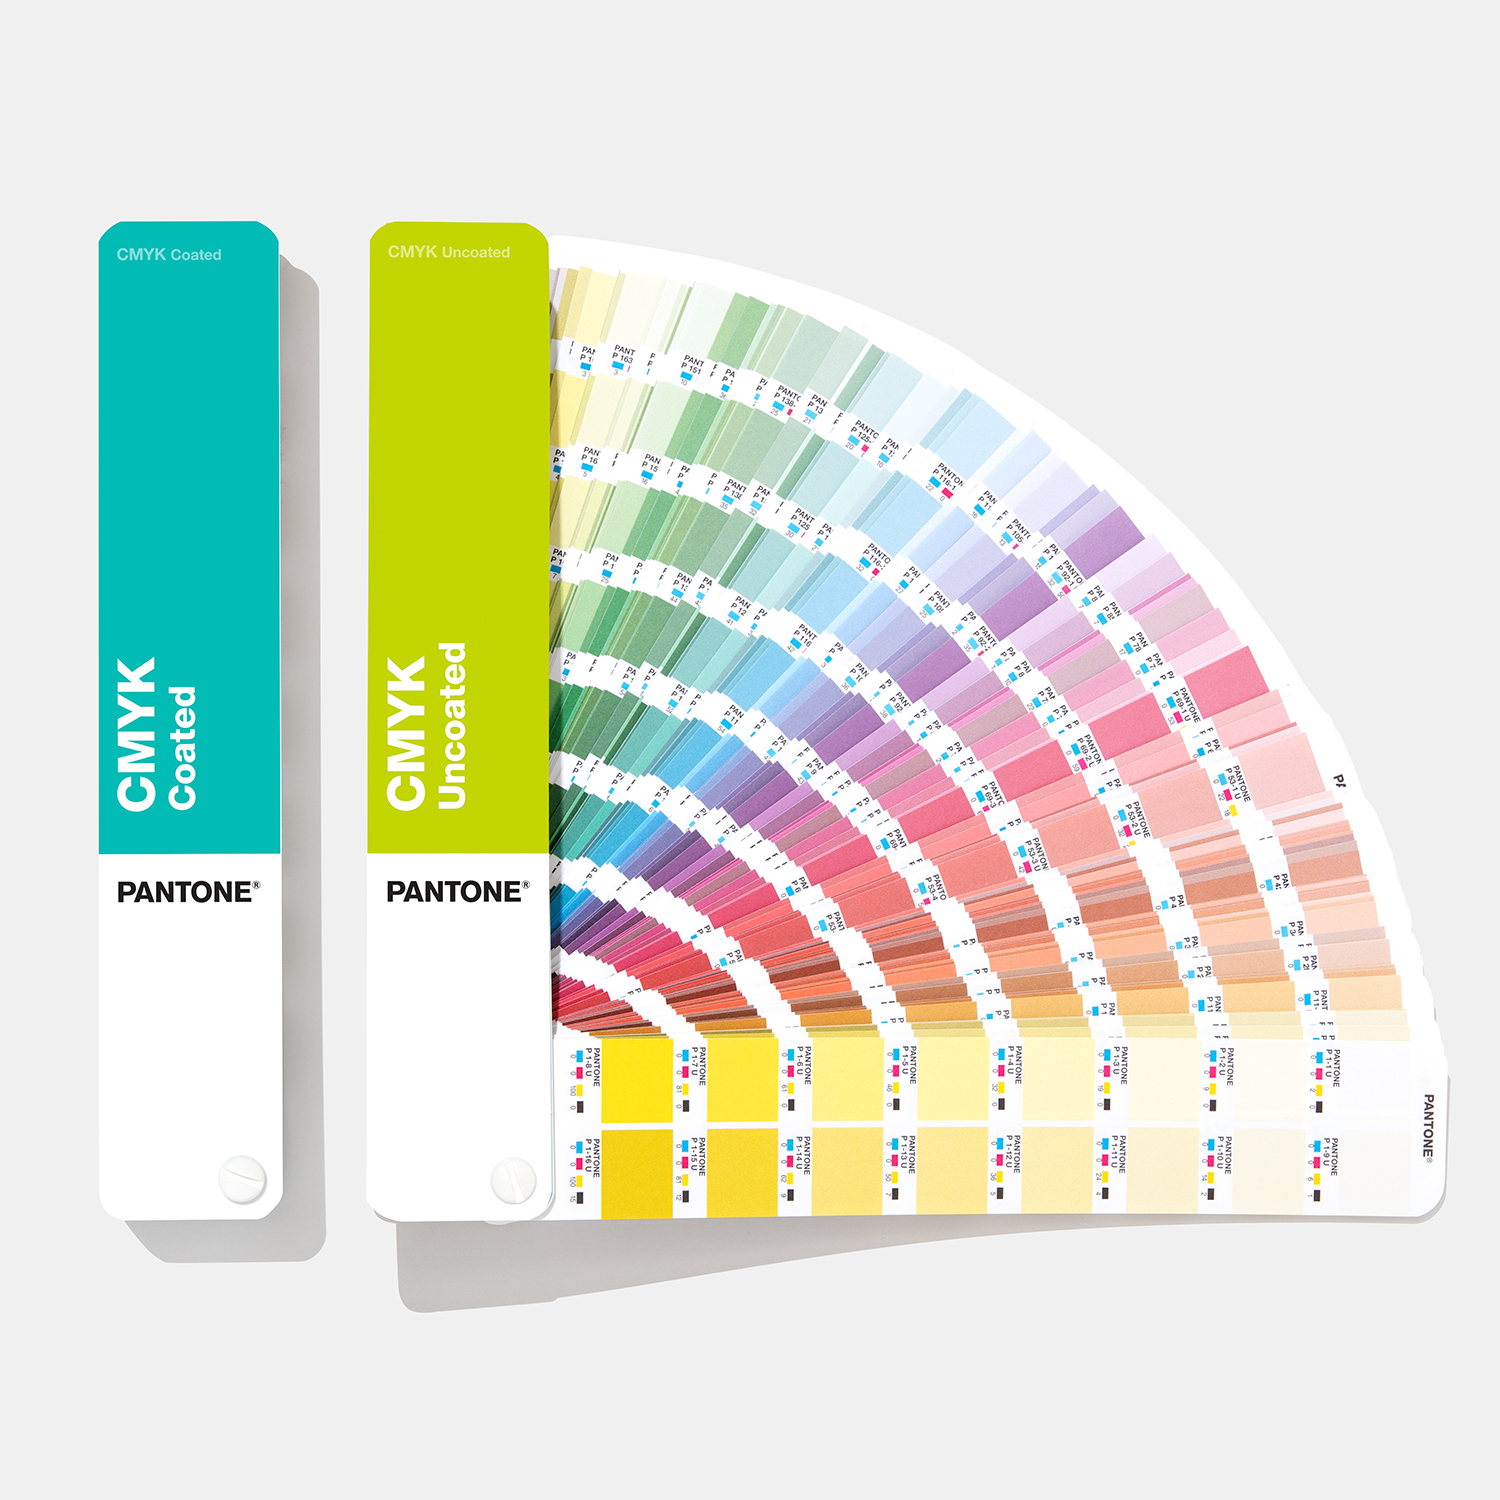 CMYK Guide | Coated & Uncoated